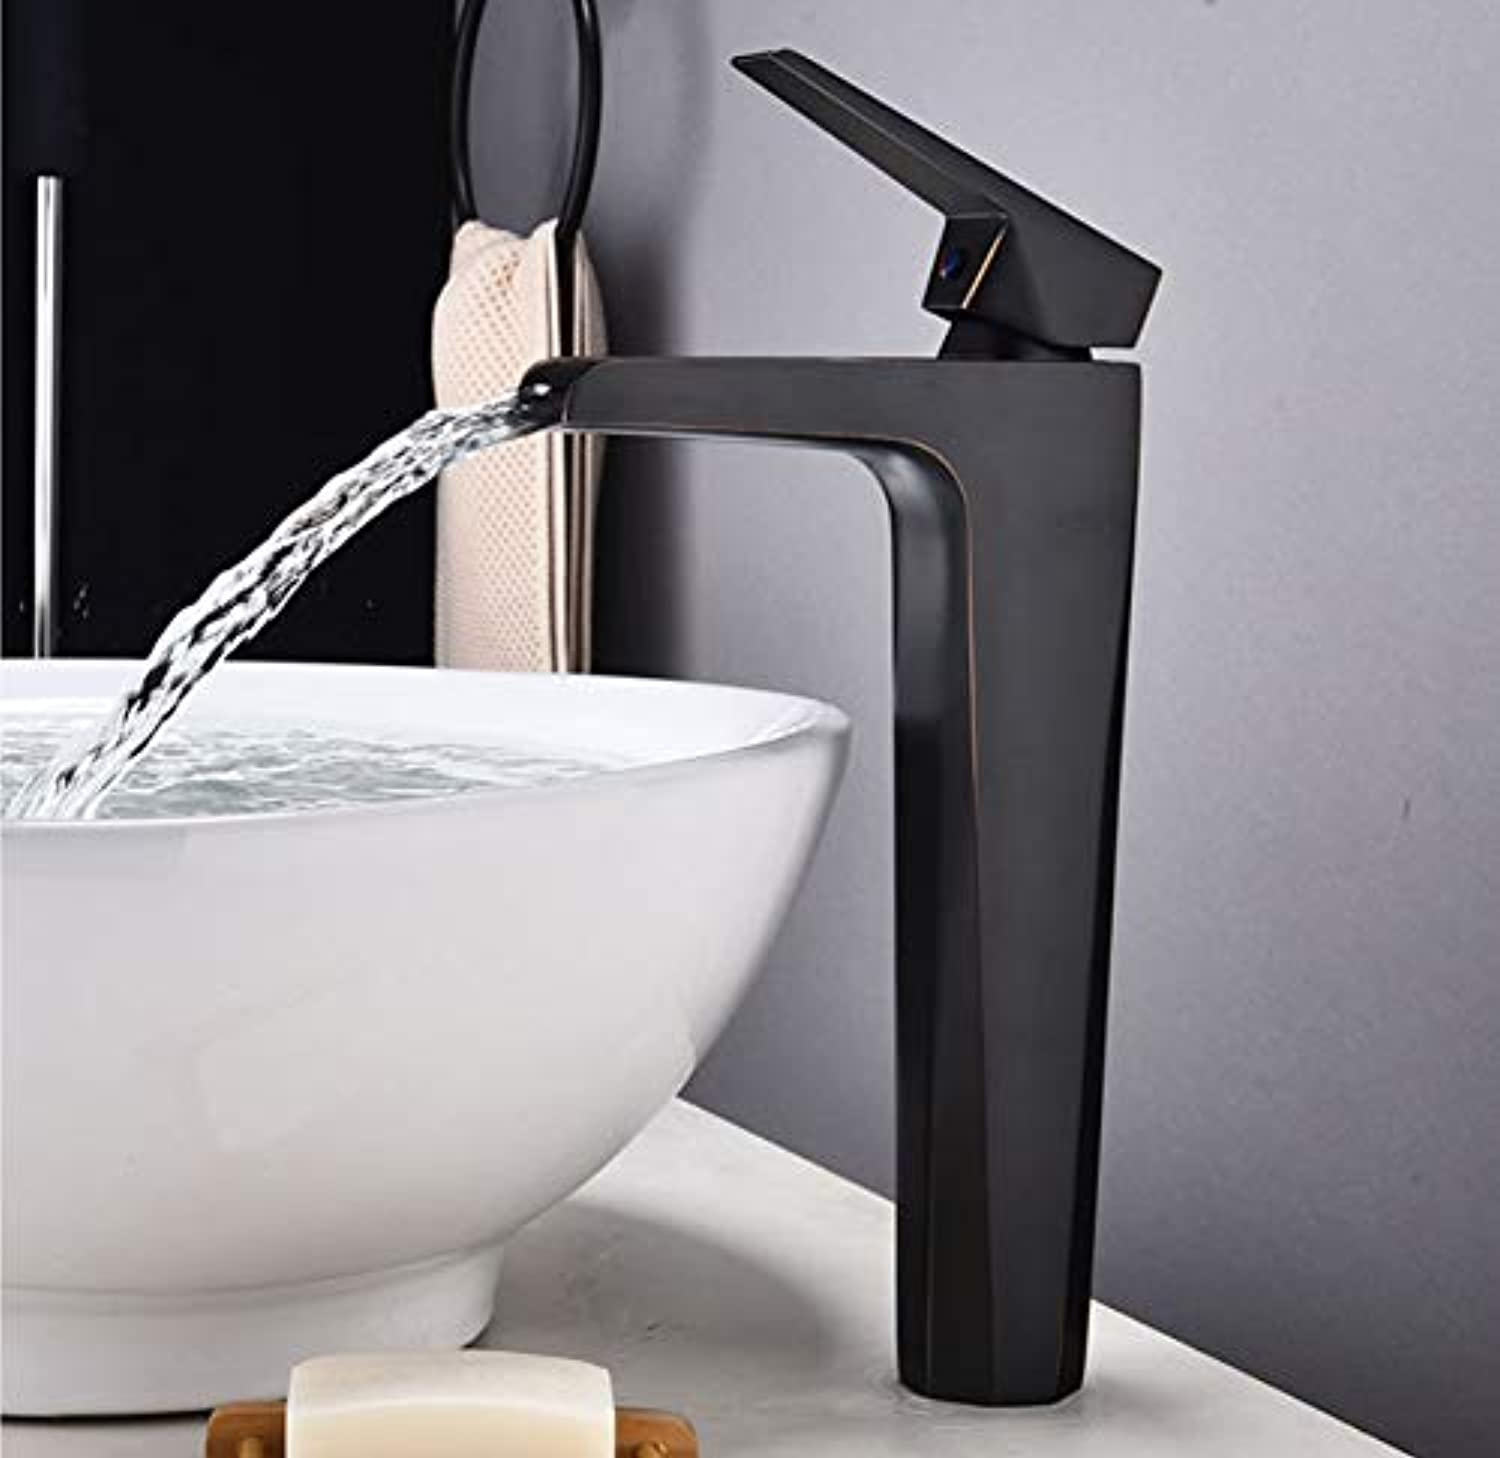 Xiehao Contemporary Basin Faucet for Bathroom Black Chrome Solid Brass Basin Mixer Taps Waterfall Cold Hot Bathroom Sink Faucet